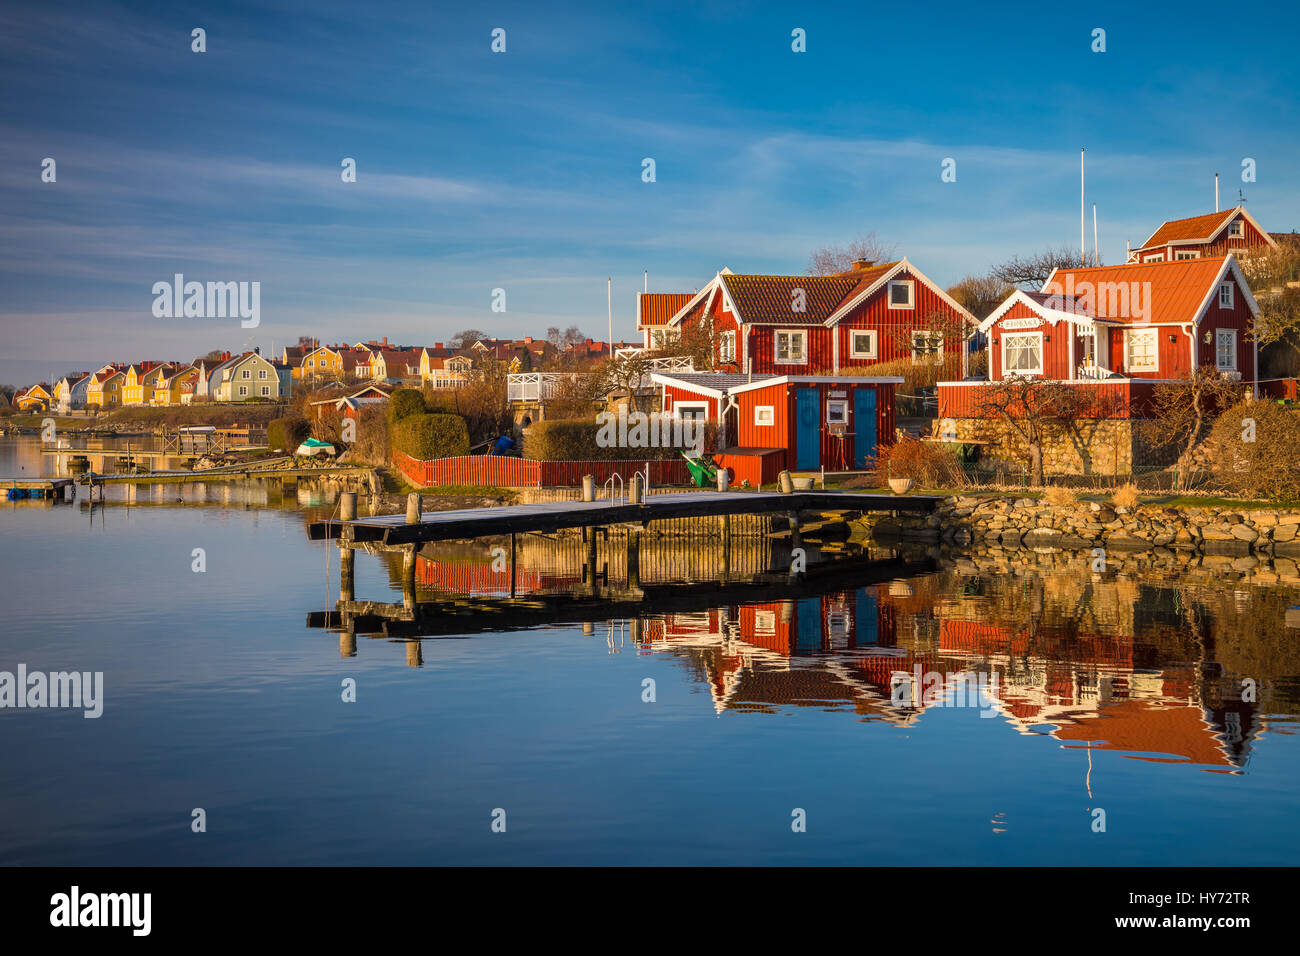 Typical Swedish small cottages in Karlskona, Sweden ..... Karlskrona is a locality and the seat of Karlskrona Municipality, - Stock Image